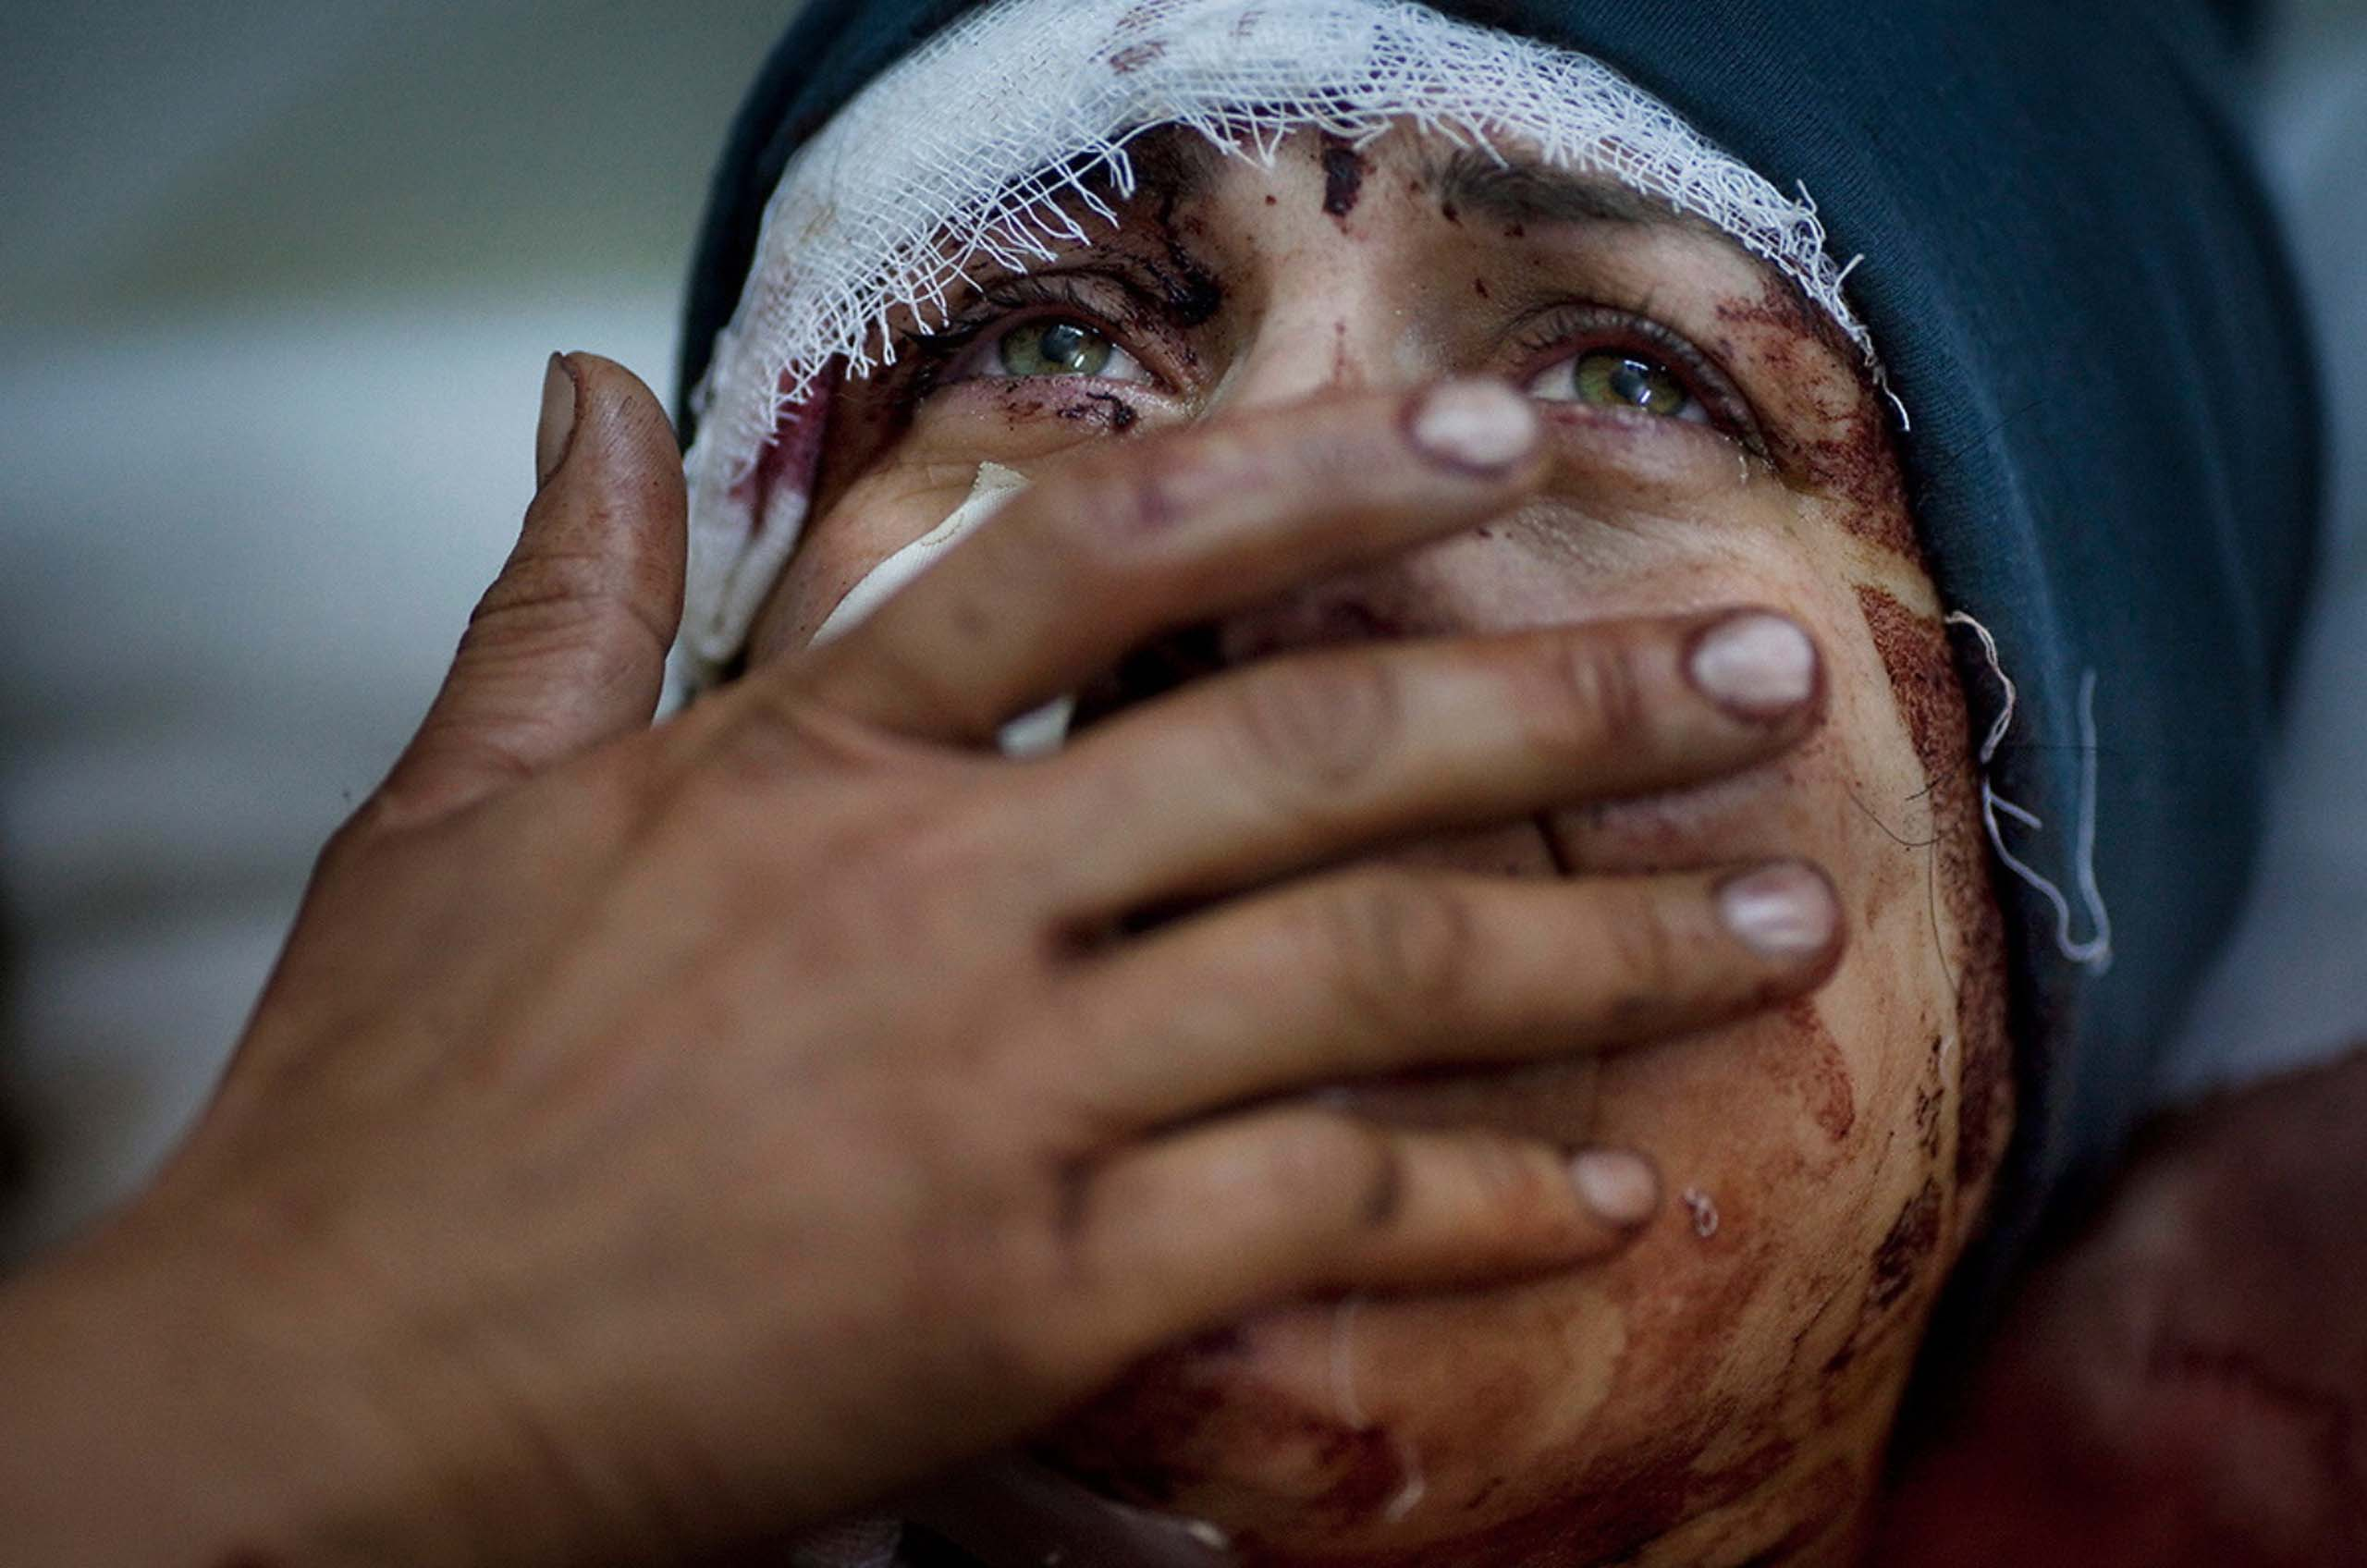 Aida crying while recovering from severe injuries she received when her house was shelled by Syrian troops.